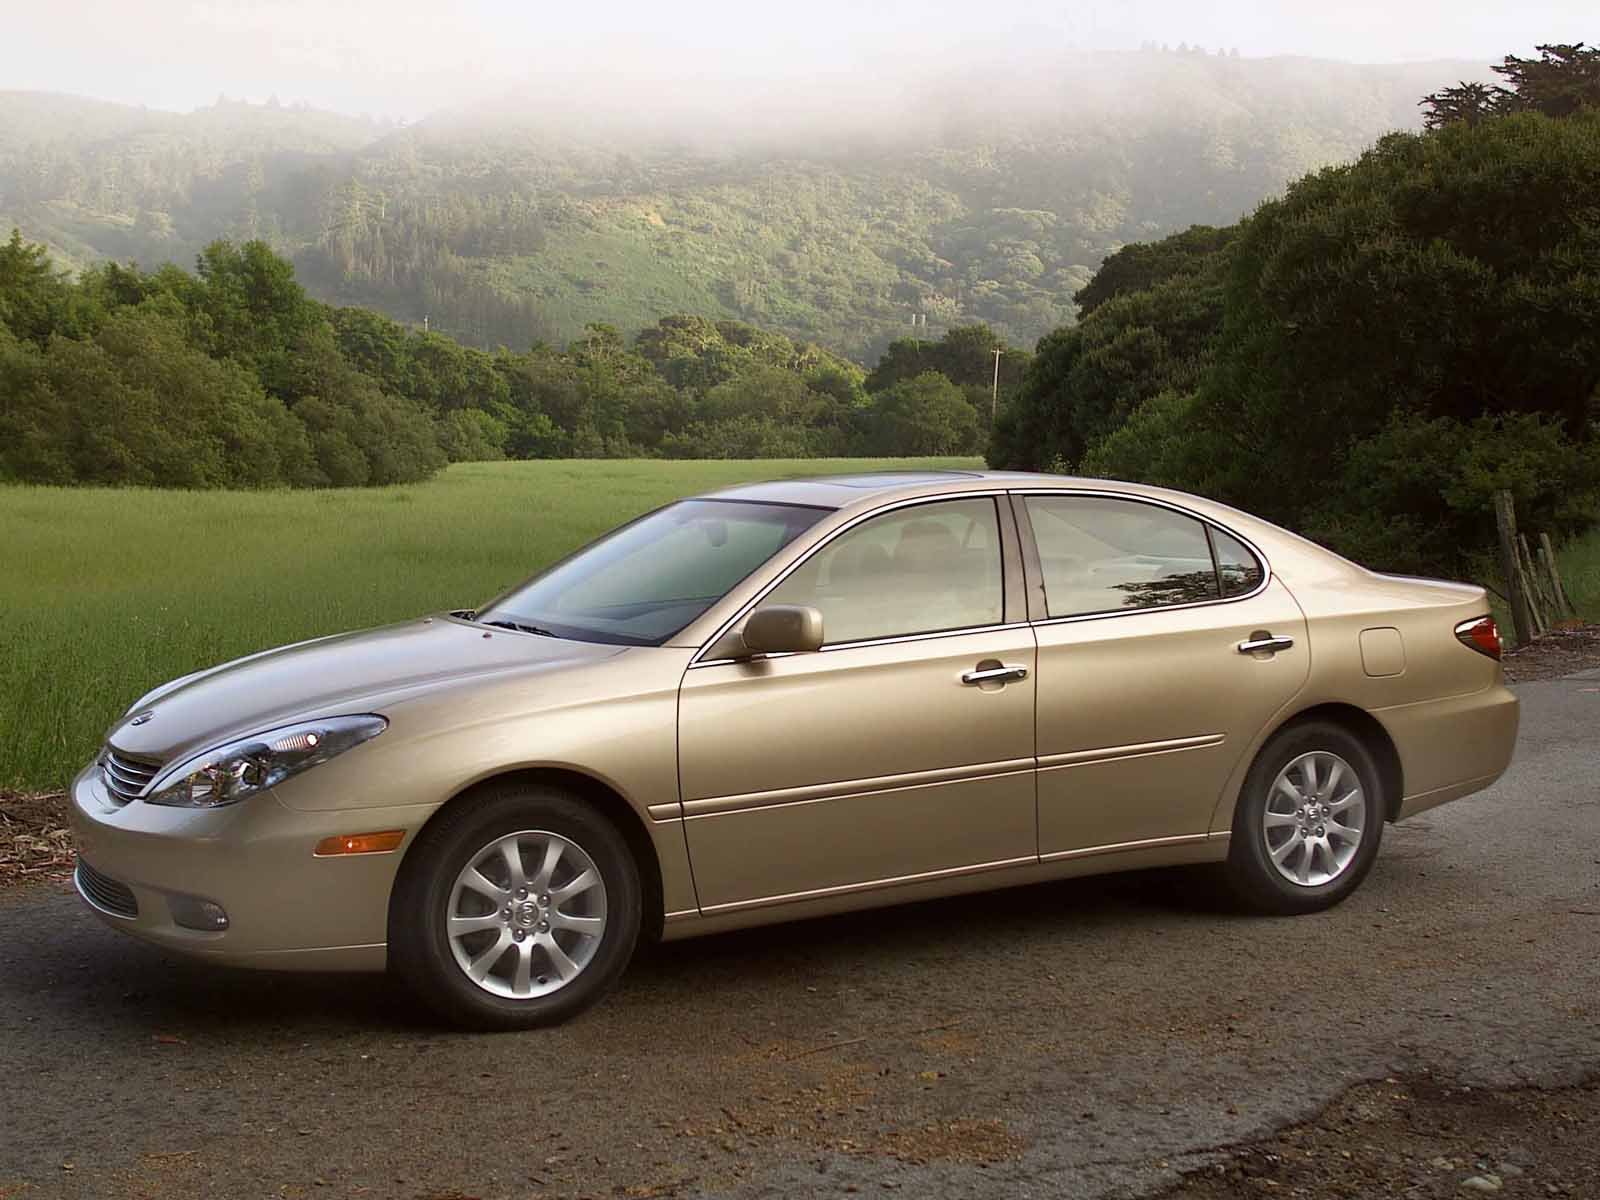 Lexus ES330 photo 8932